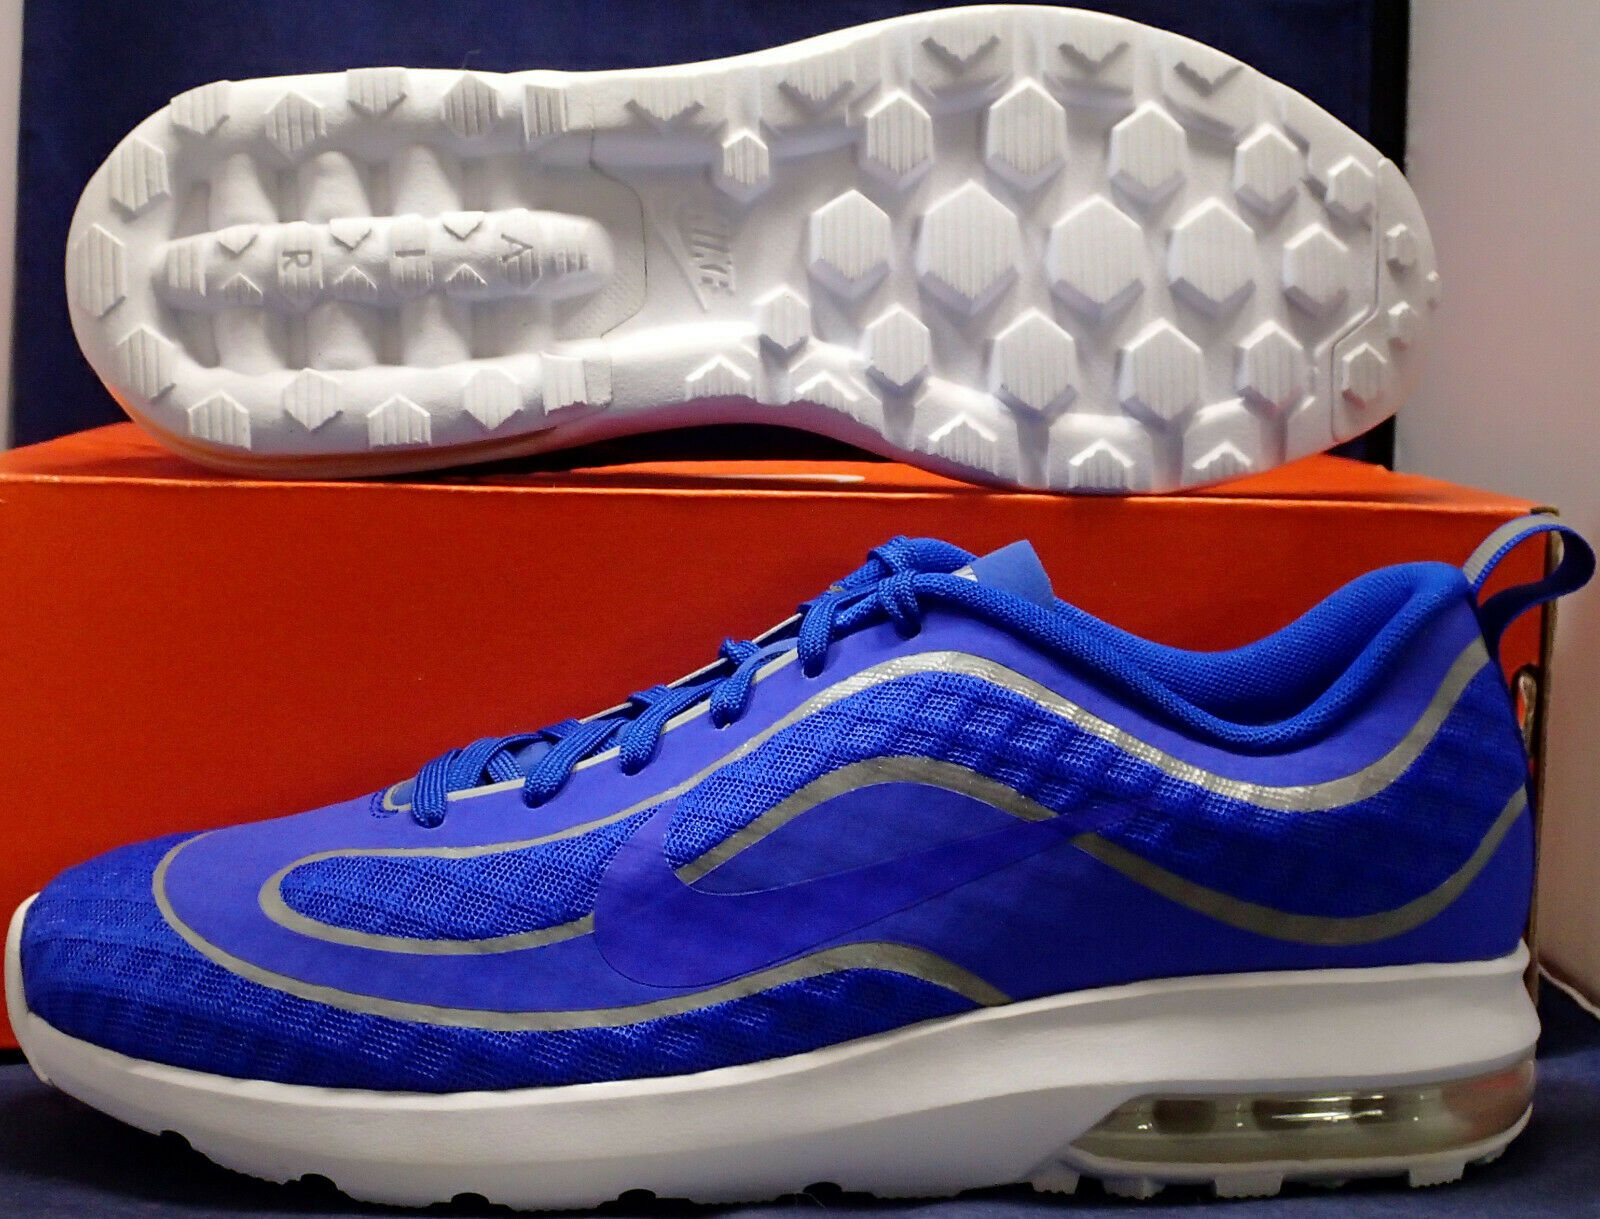 UNRELEASED SAMPLE Nike Air Max Mercurial R9 98 bluee Silver SZ 9 ( 818675-401 )